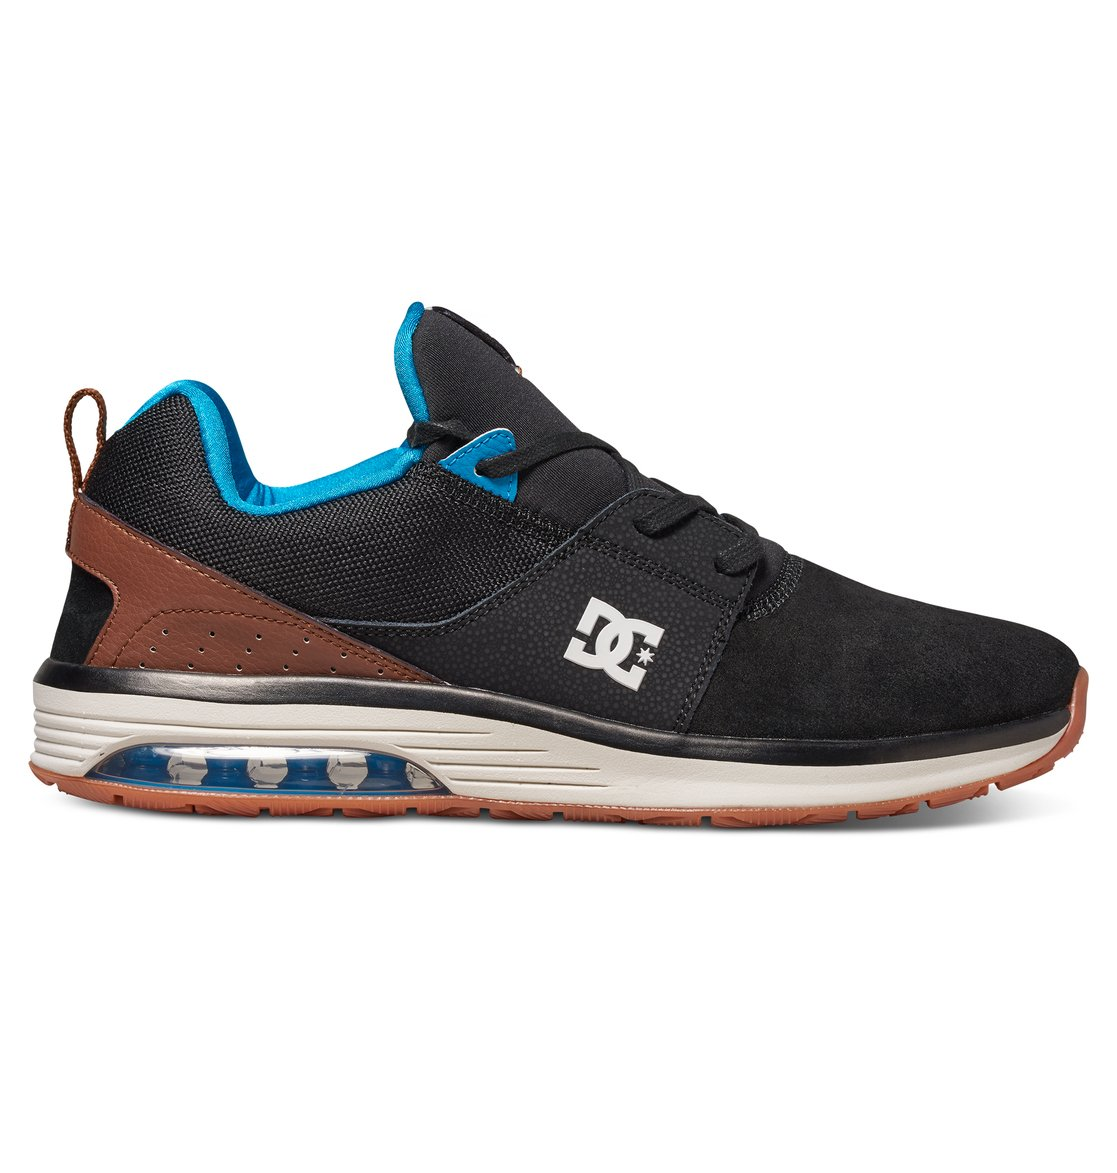 Chaussures de tennis Dc Shoes Heathrow qyY5v3gVAP